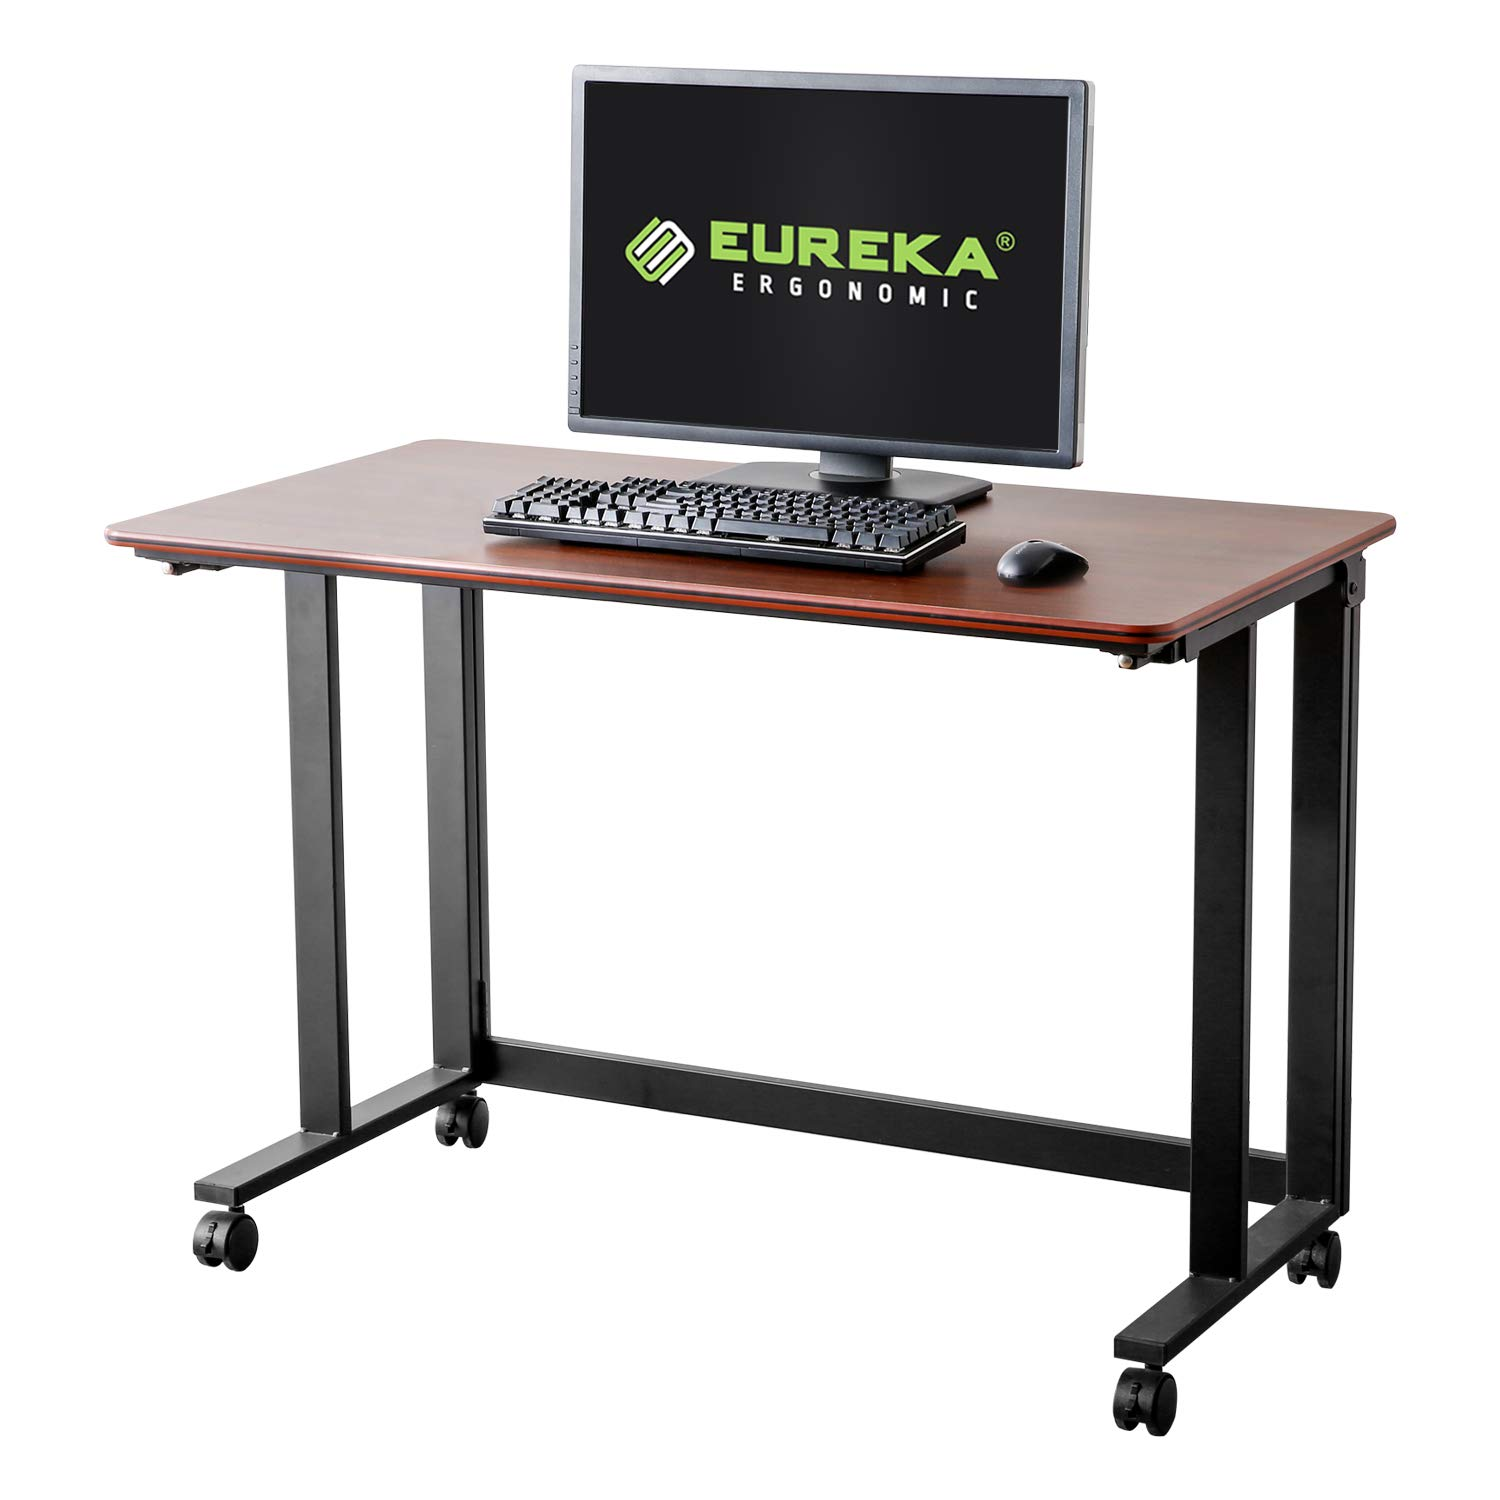 Eureka Ergonomic Rolling Desk, 43'' Mobile Utility Table Folding Desk with Four Lockable Wheels Large Work Space One Button to Fold No Assembly Required Cherry by Eureka Ergonomic